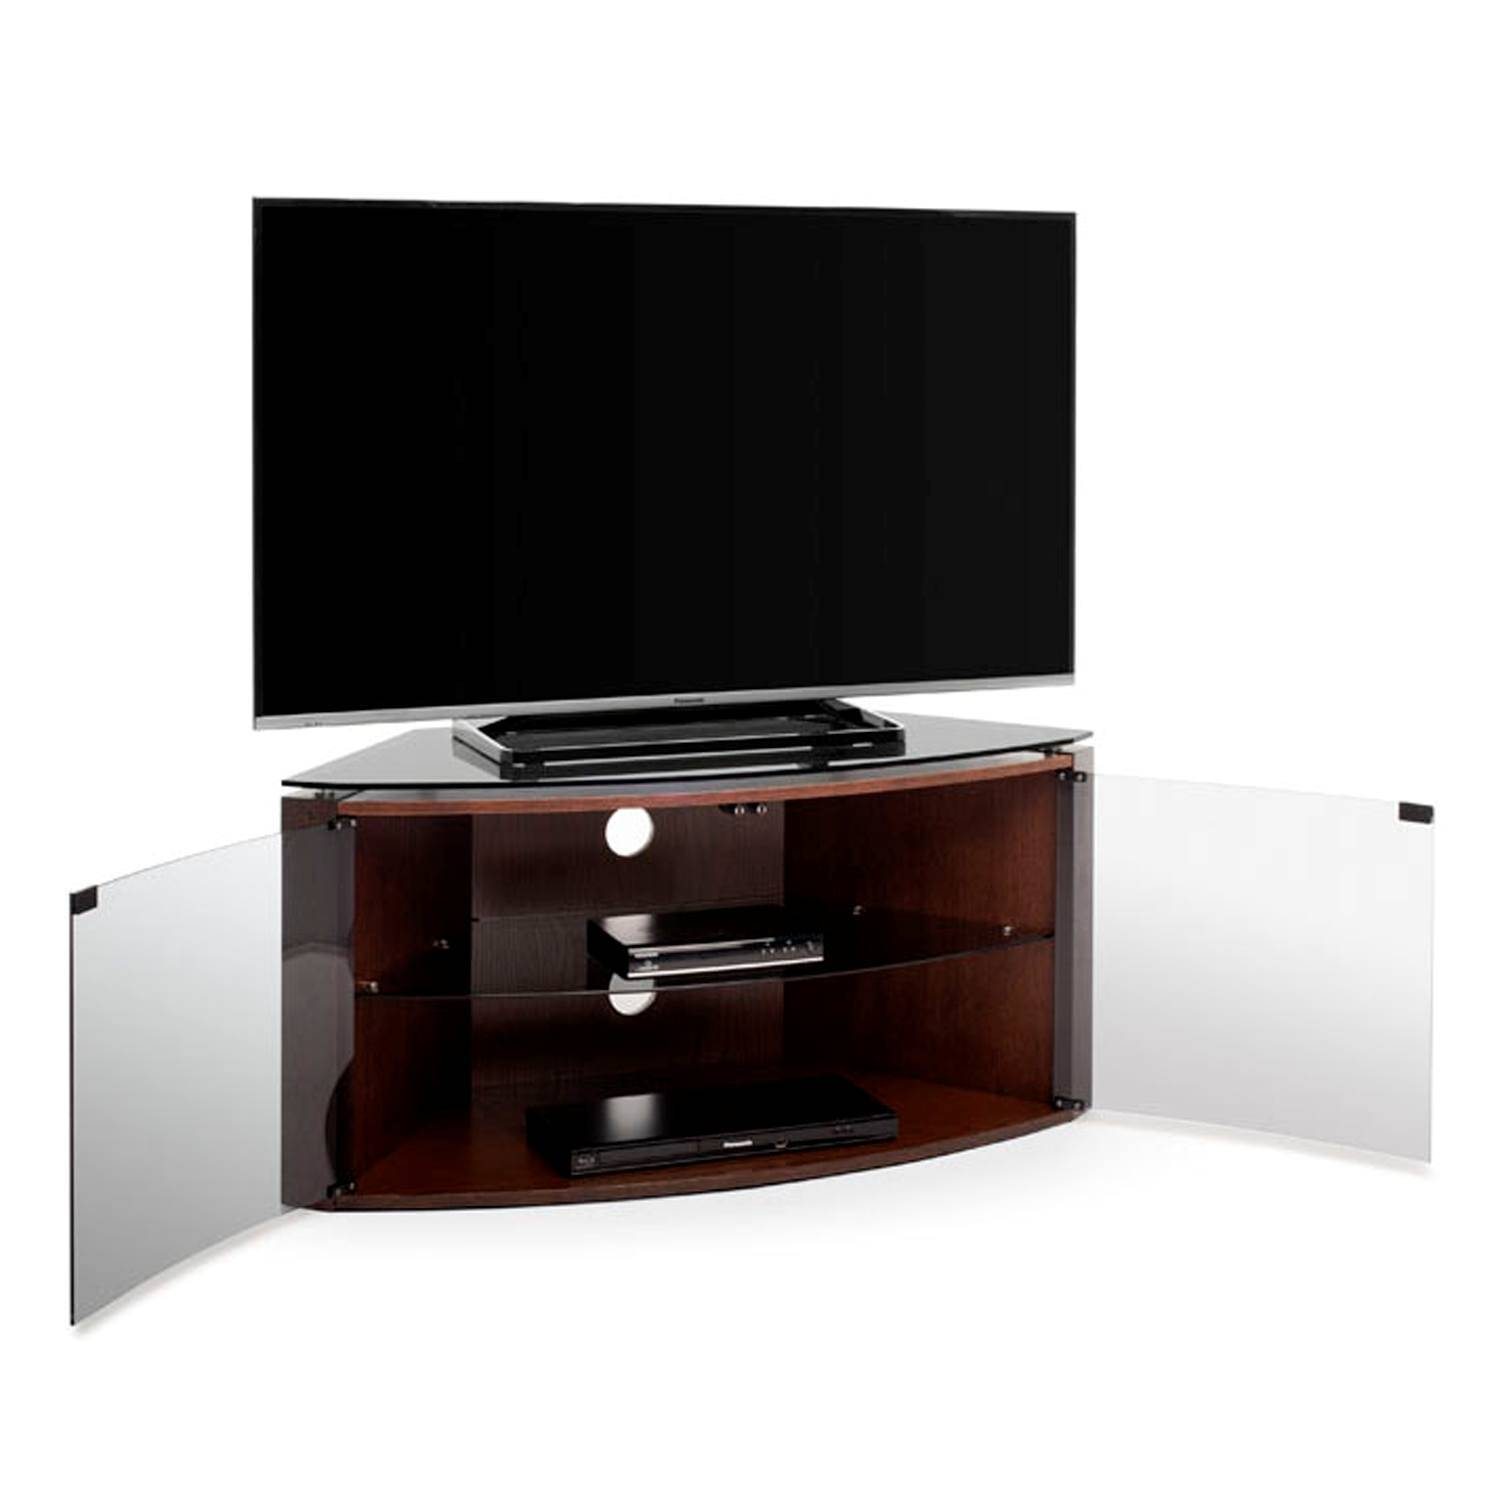 "Techlink Bench B6Do Dark Oak Corner Tv Stand For Up To 55"" Tvs regarding Techlink Bench Corner Tv Stands (Image 4 of 15)"